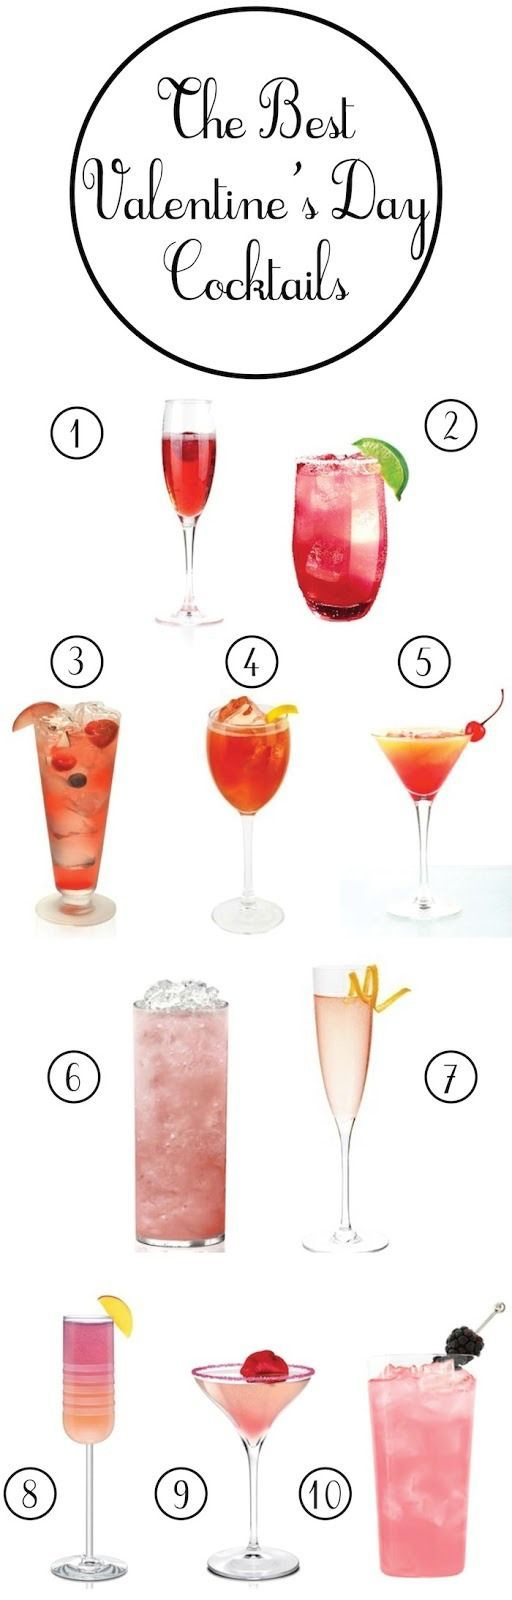 The Best Valentine's Day Cocktails! #Valentines #Cocktail